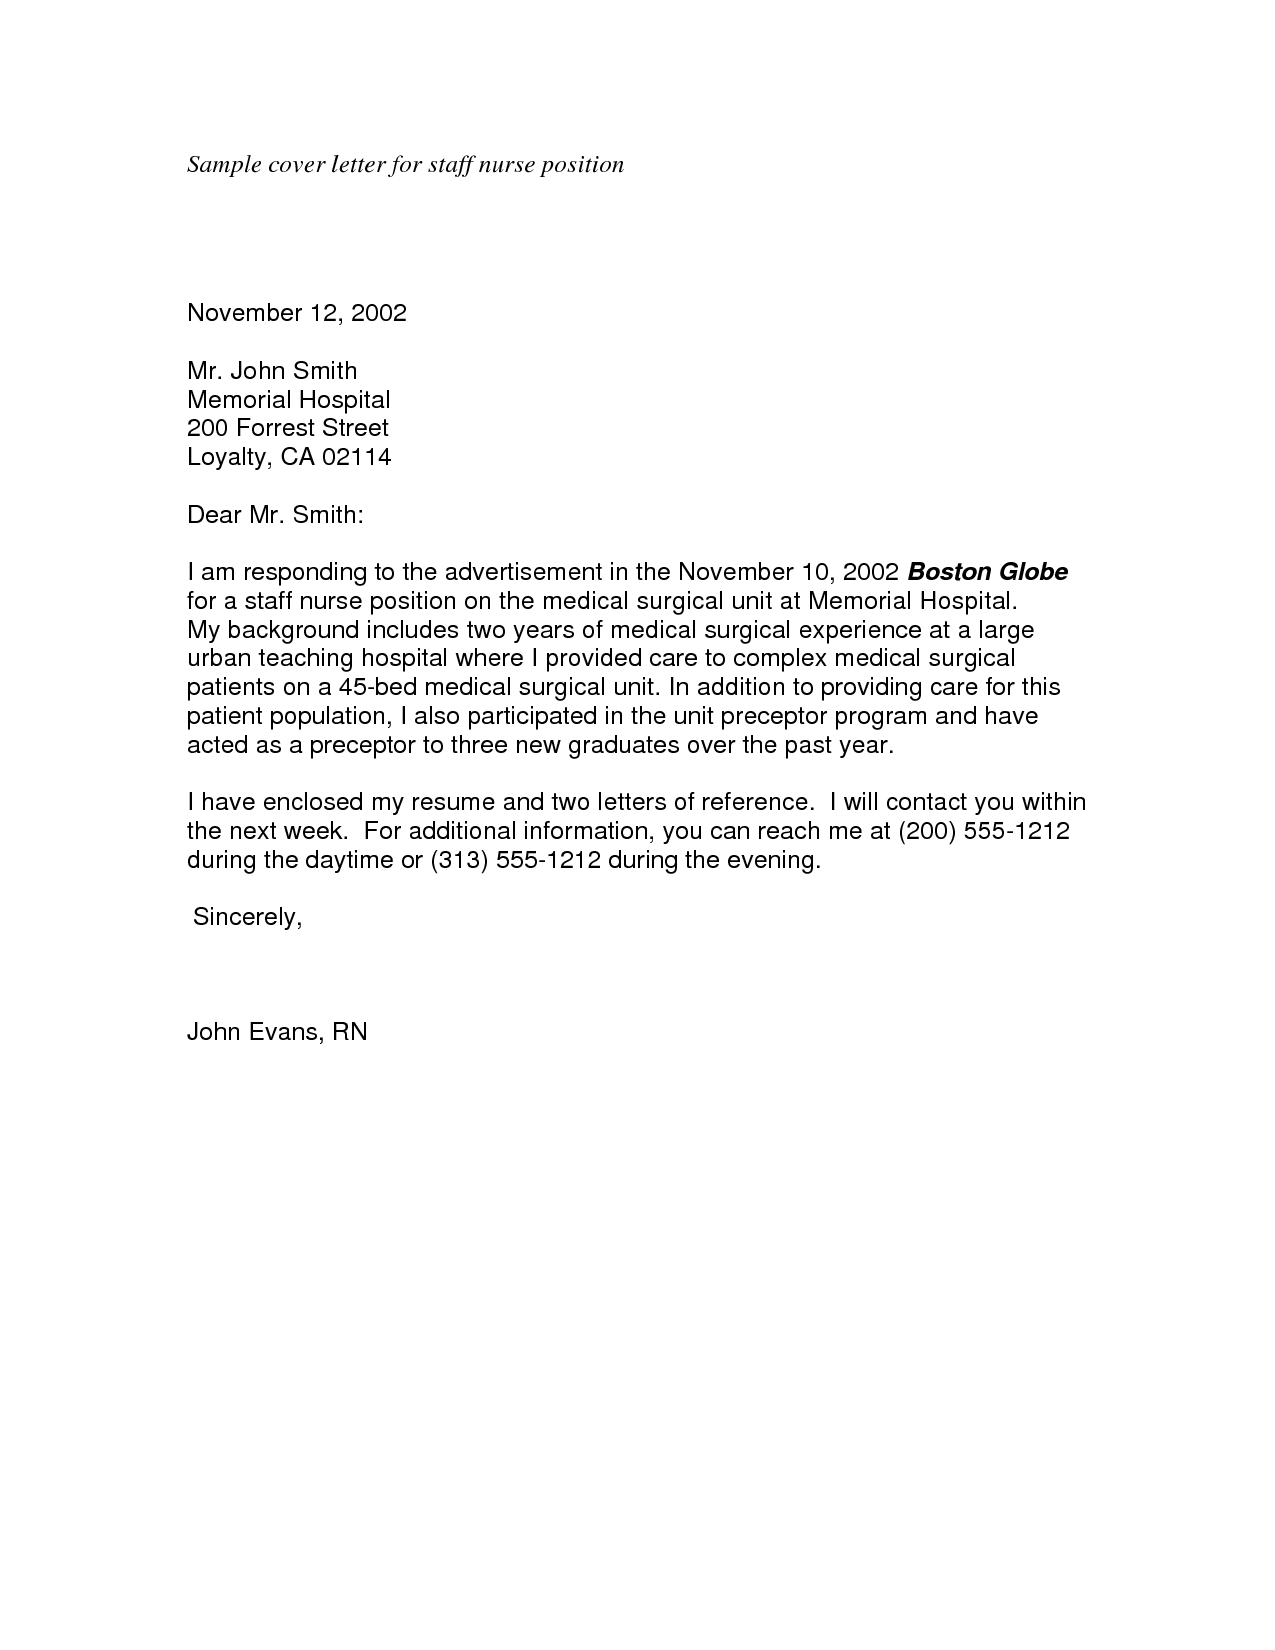 Sample Cover Letter For Job Application Resume Samples . Sample Covers